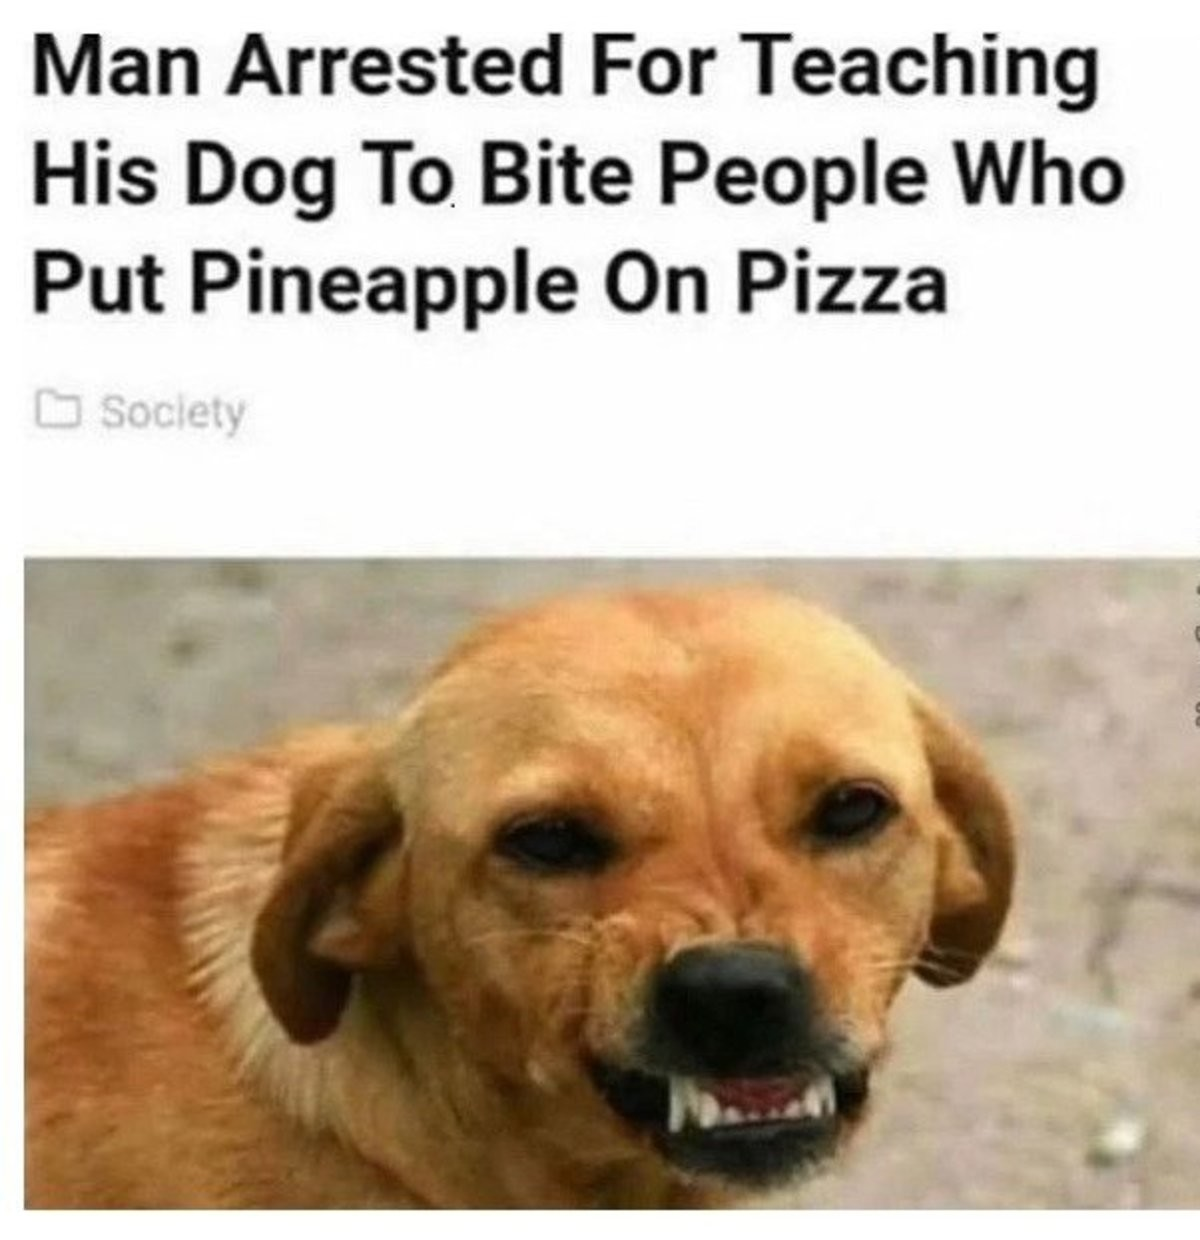 How To Train Your Dog. join list: CuteDogs (234 subs)Mention History. Put Cirri' l, Pizza. Christ, dude, if you don't like it, you don't have to eat any. What authority do you have to say what should or shouldn't be on someone else's pizza?